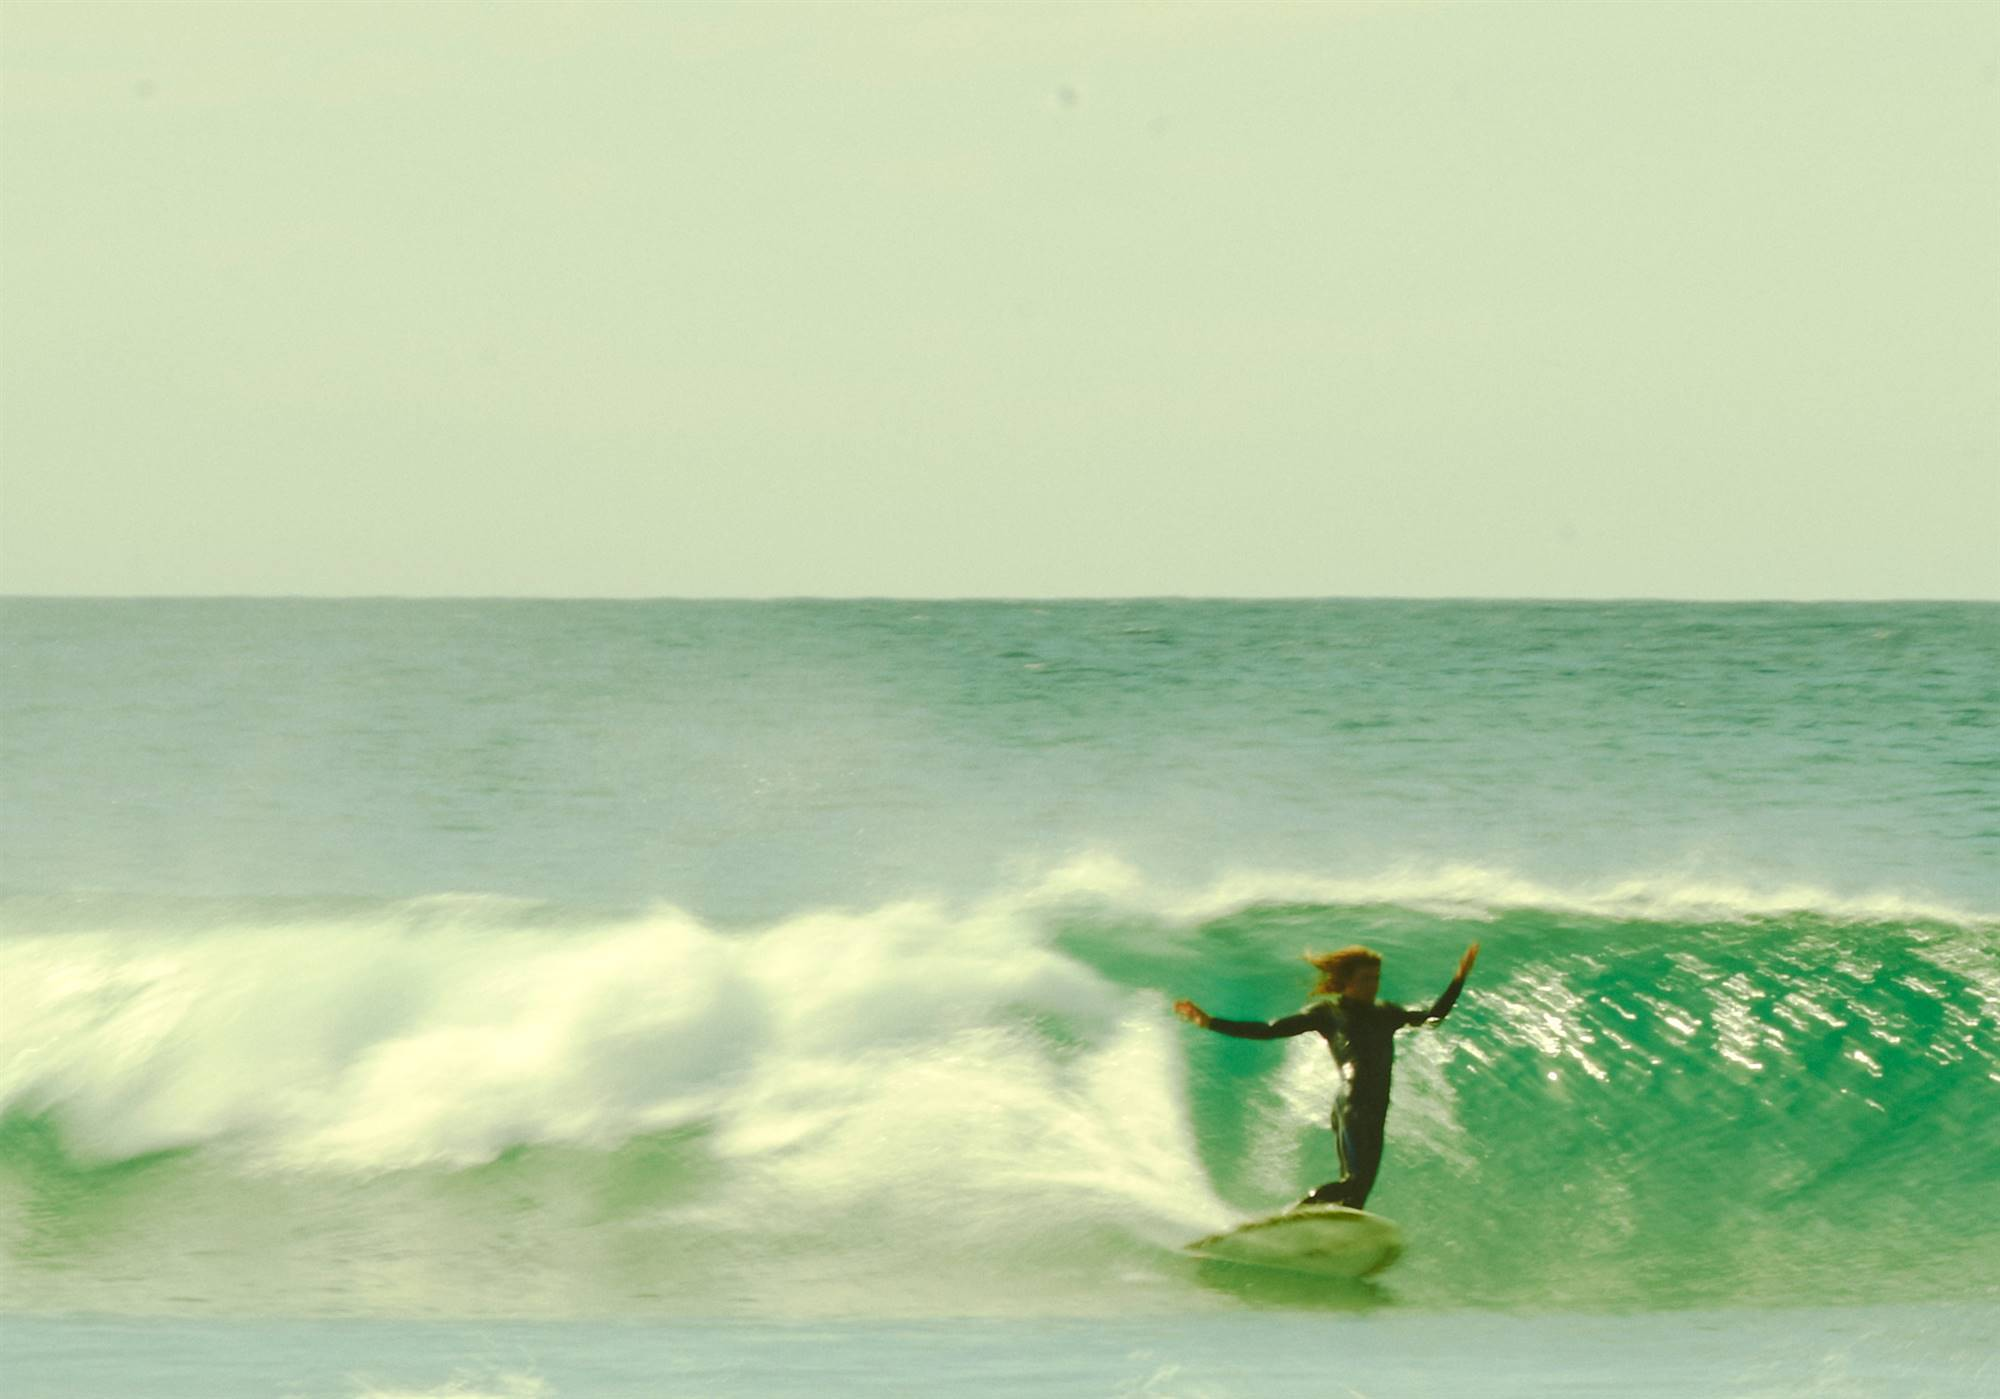 Myths of the Mid-Length: Modern surfing's most controversial ride